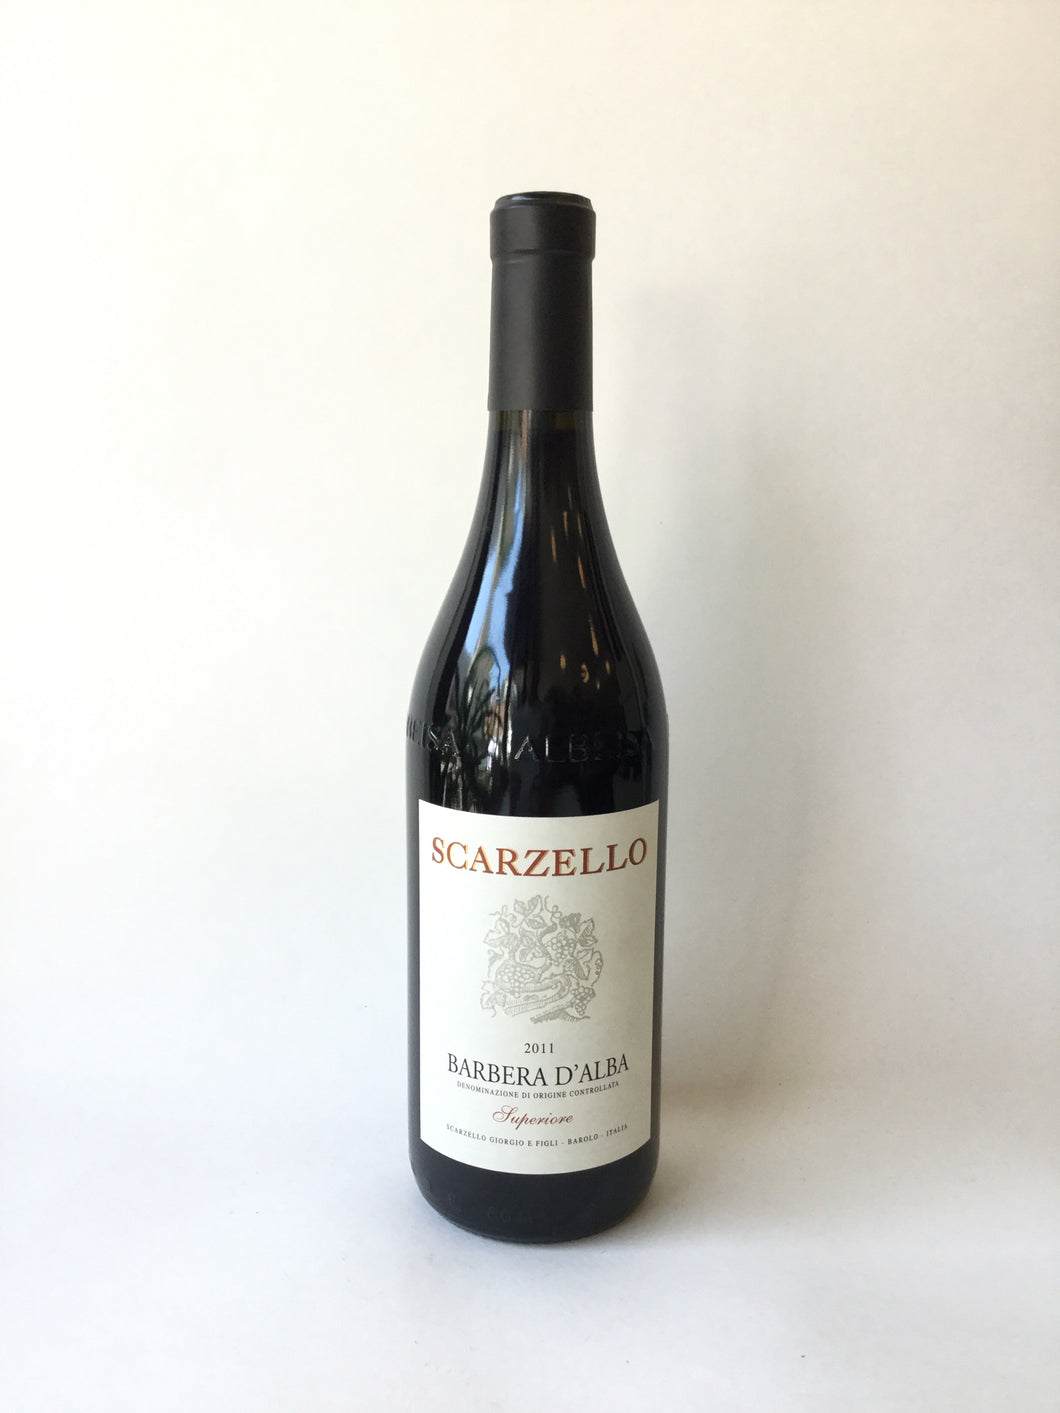 Scarzello, Barbera d'Alba Superiore, 2011, 750ml - Frankly Wines